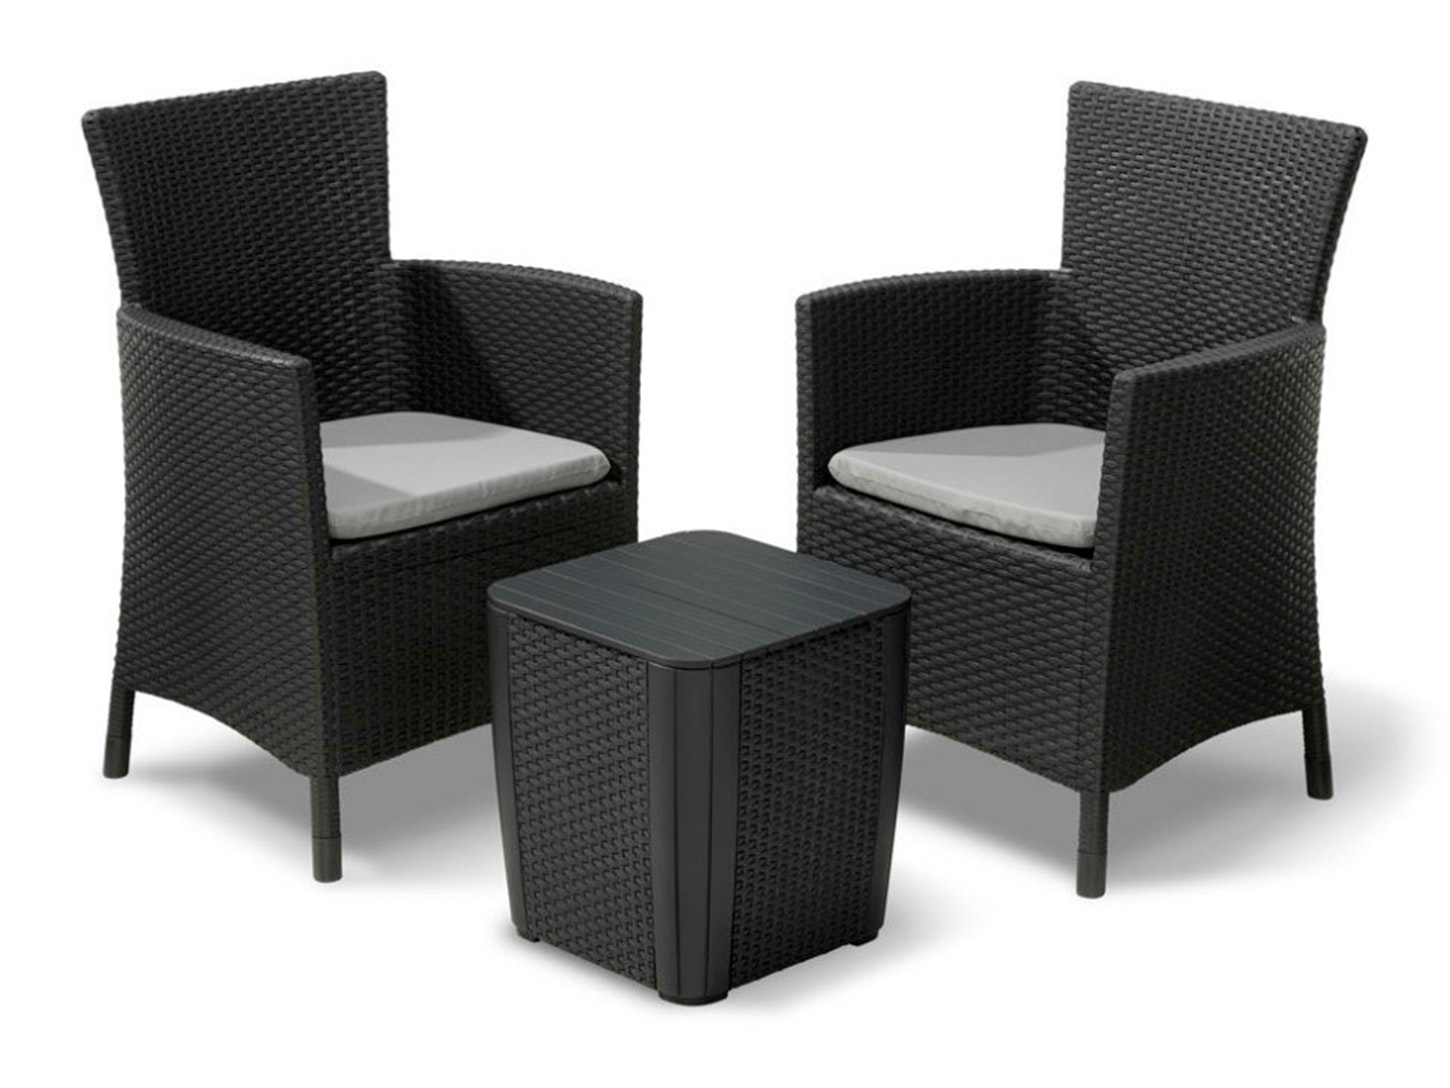 Keter iowa balcony set lounge sets outdoor furniture home outdoor living trade tested